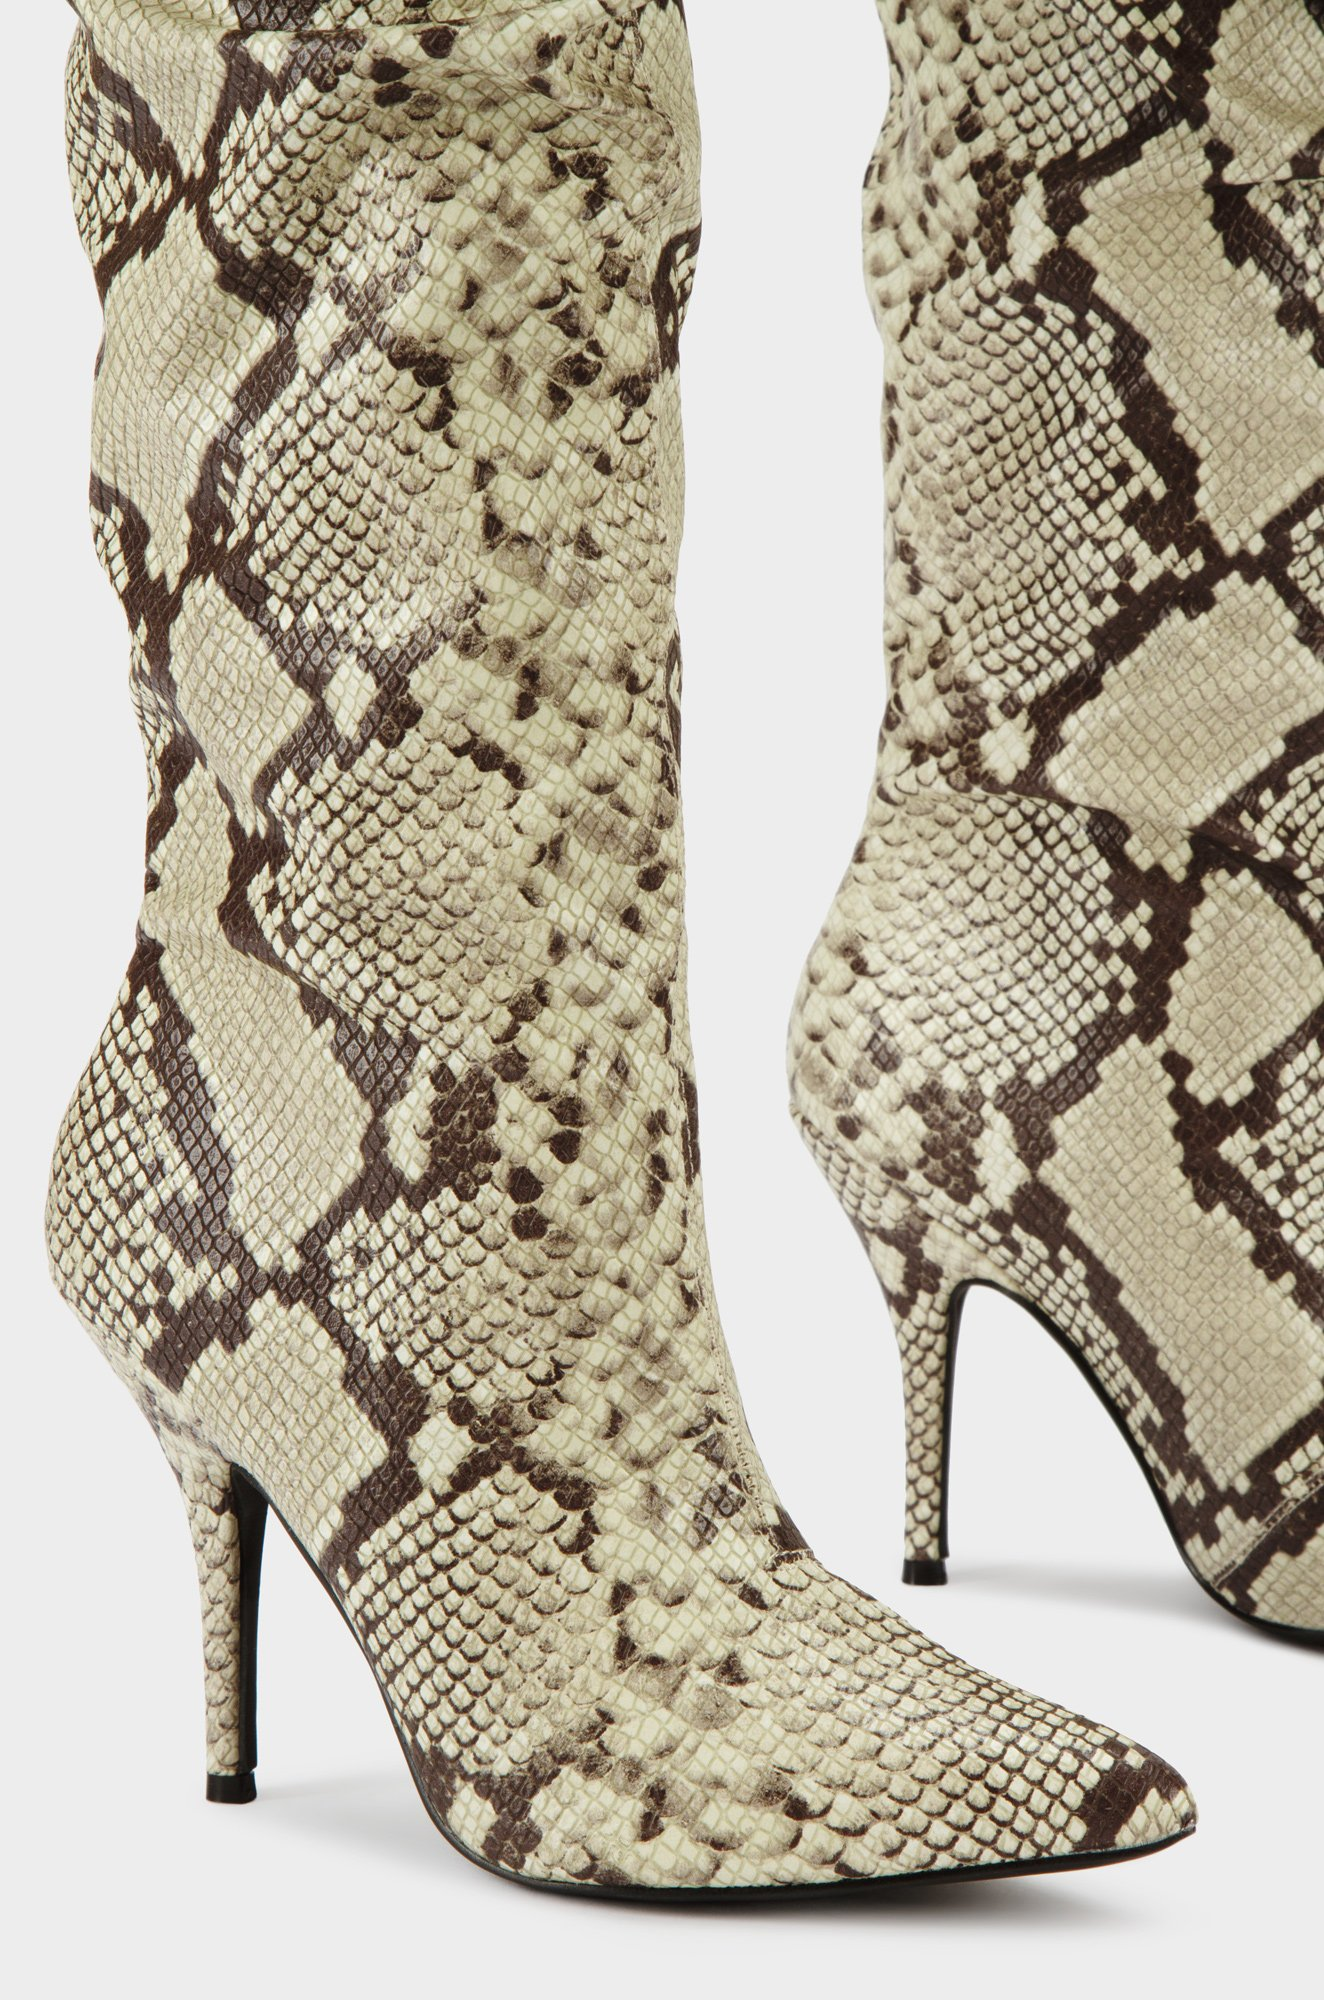 Cape-Robbin-Bown-Snake-Thigh-High-Slouch-Pointed-Toe-Over-The-Knee-Stiletto-Boot thumbnail 68